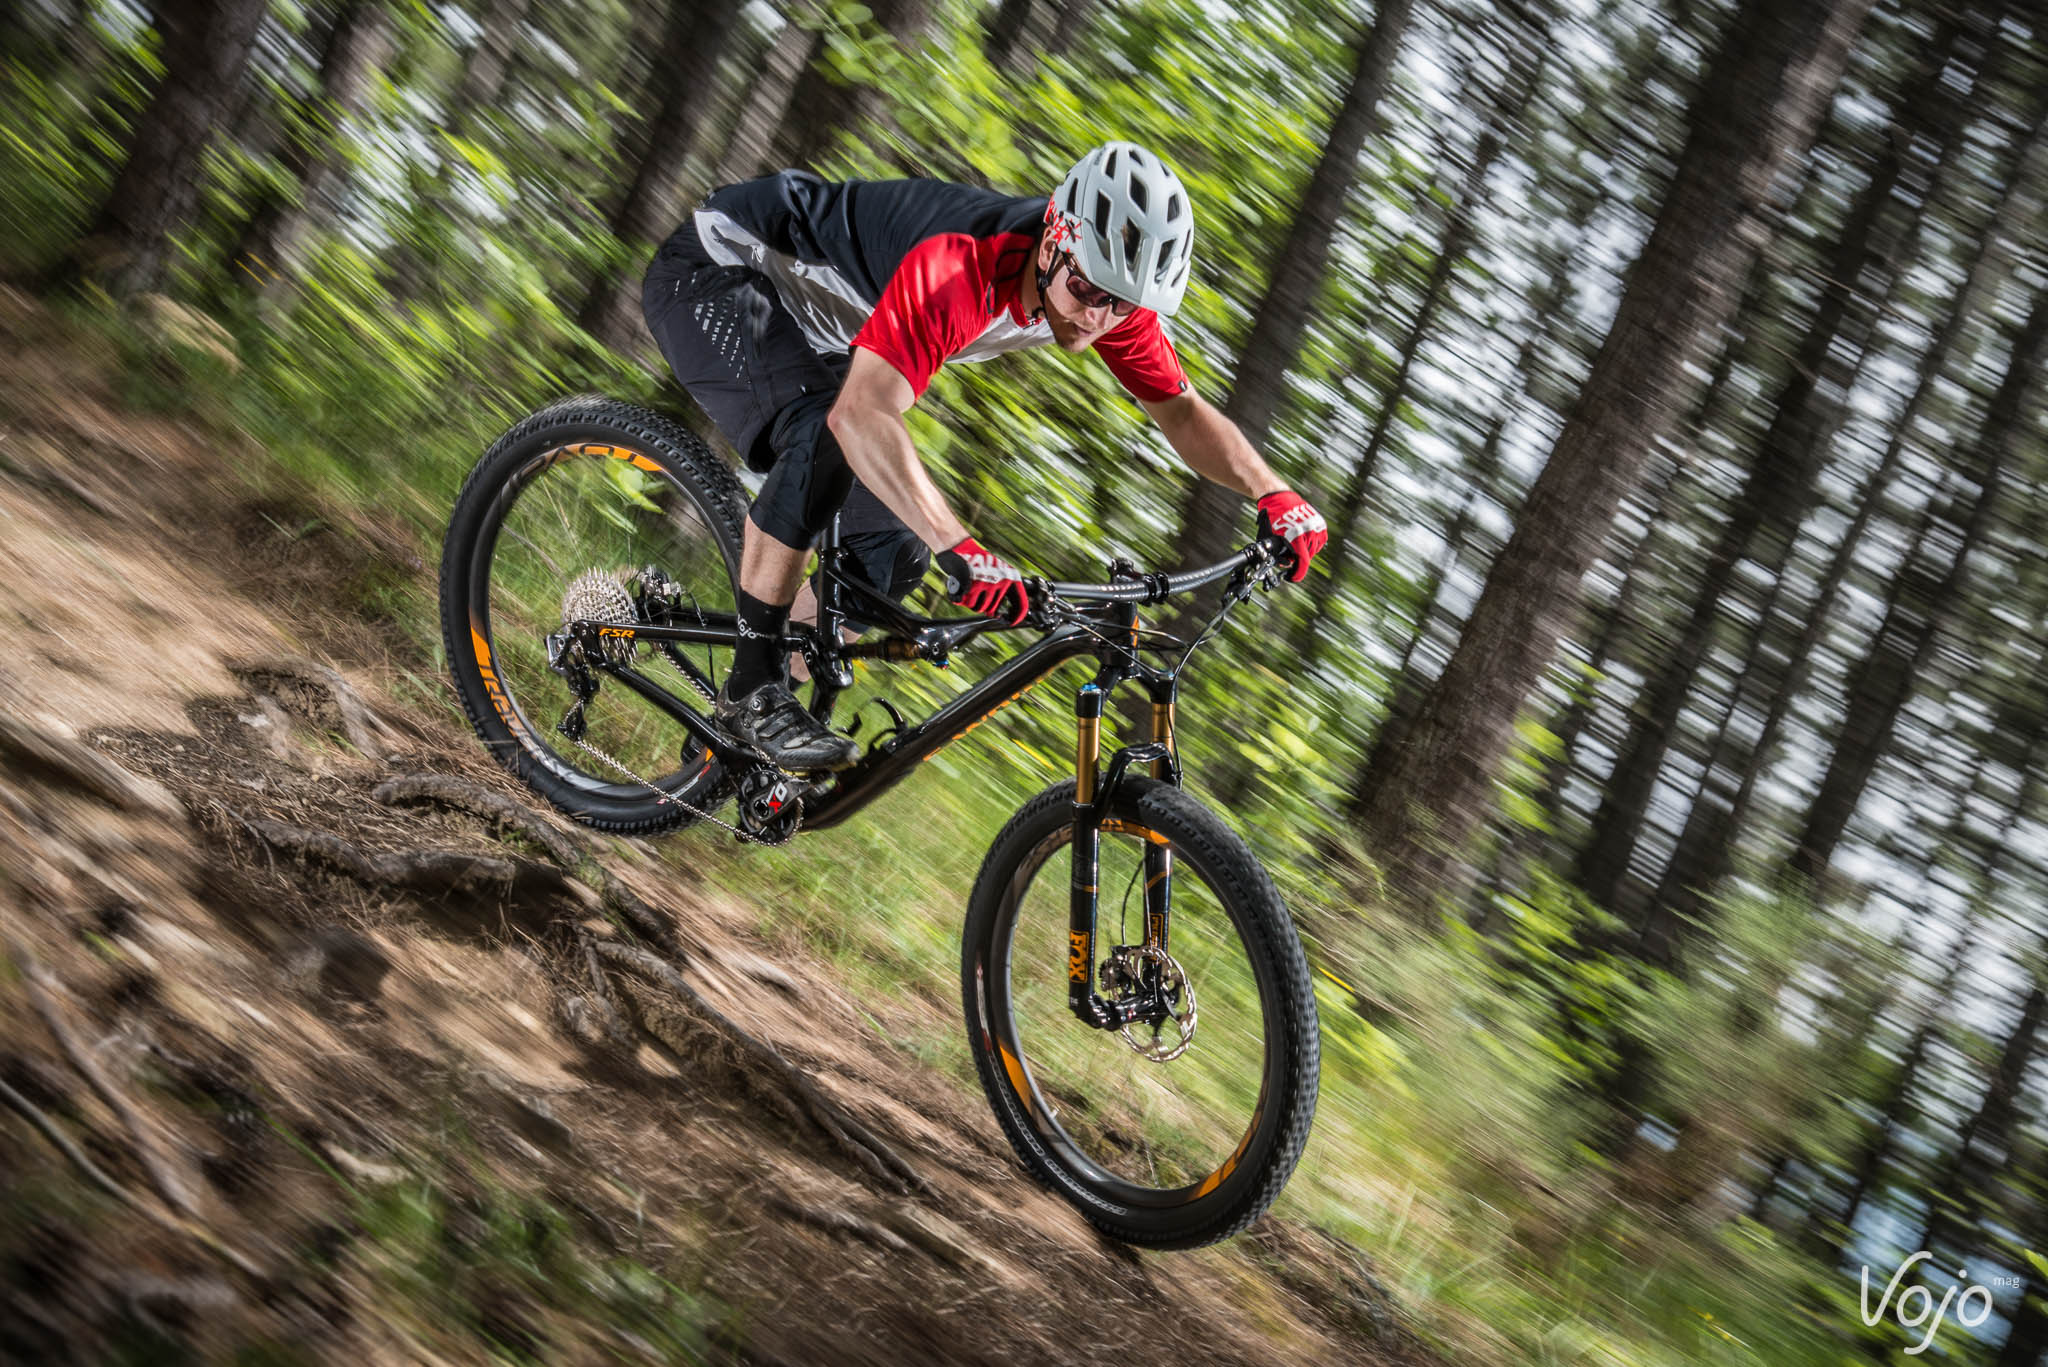 Specialized_Stumpjumper_Action_Copyright_Manu_Molle_VojoMag-6